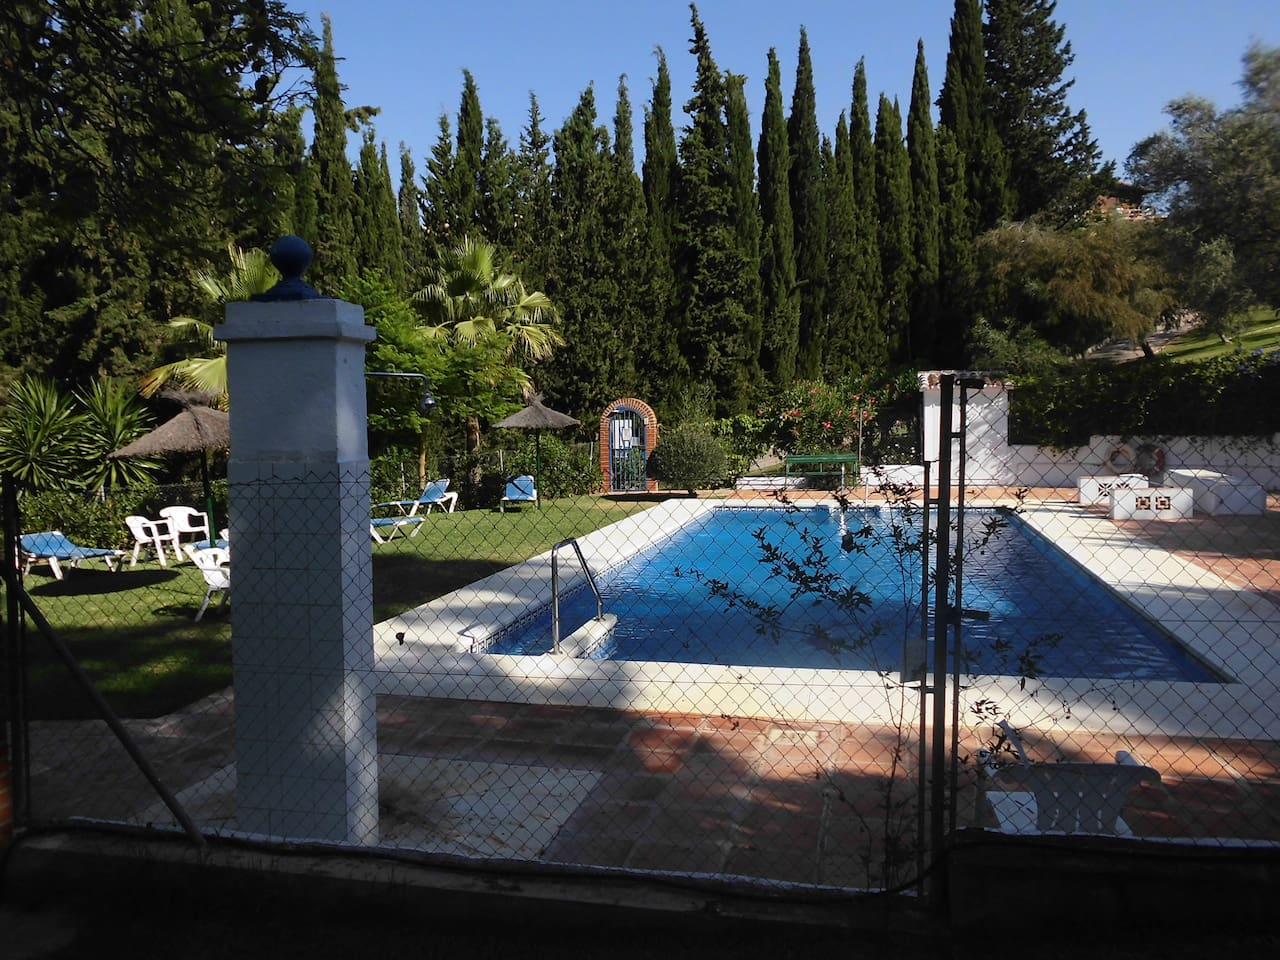 The residents only cummunal private Swimming Pool & Gardens.